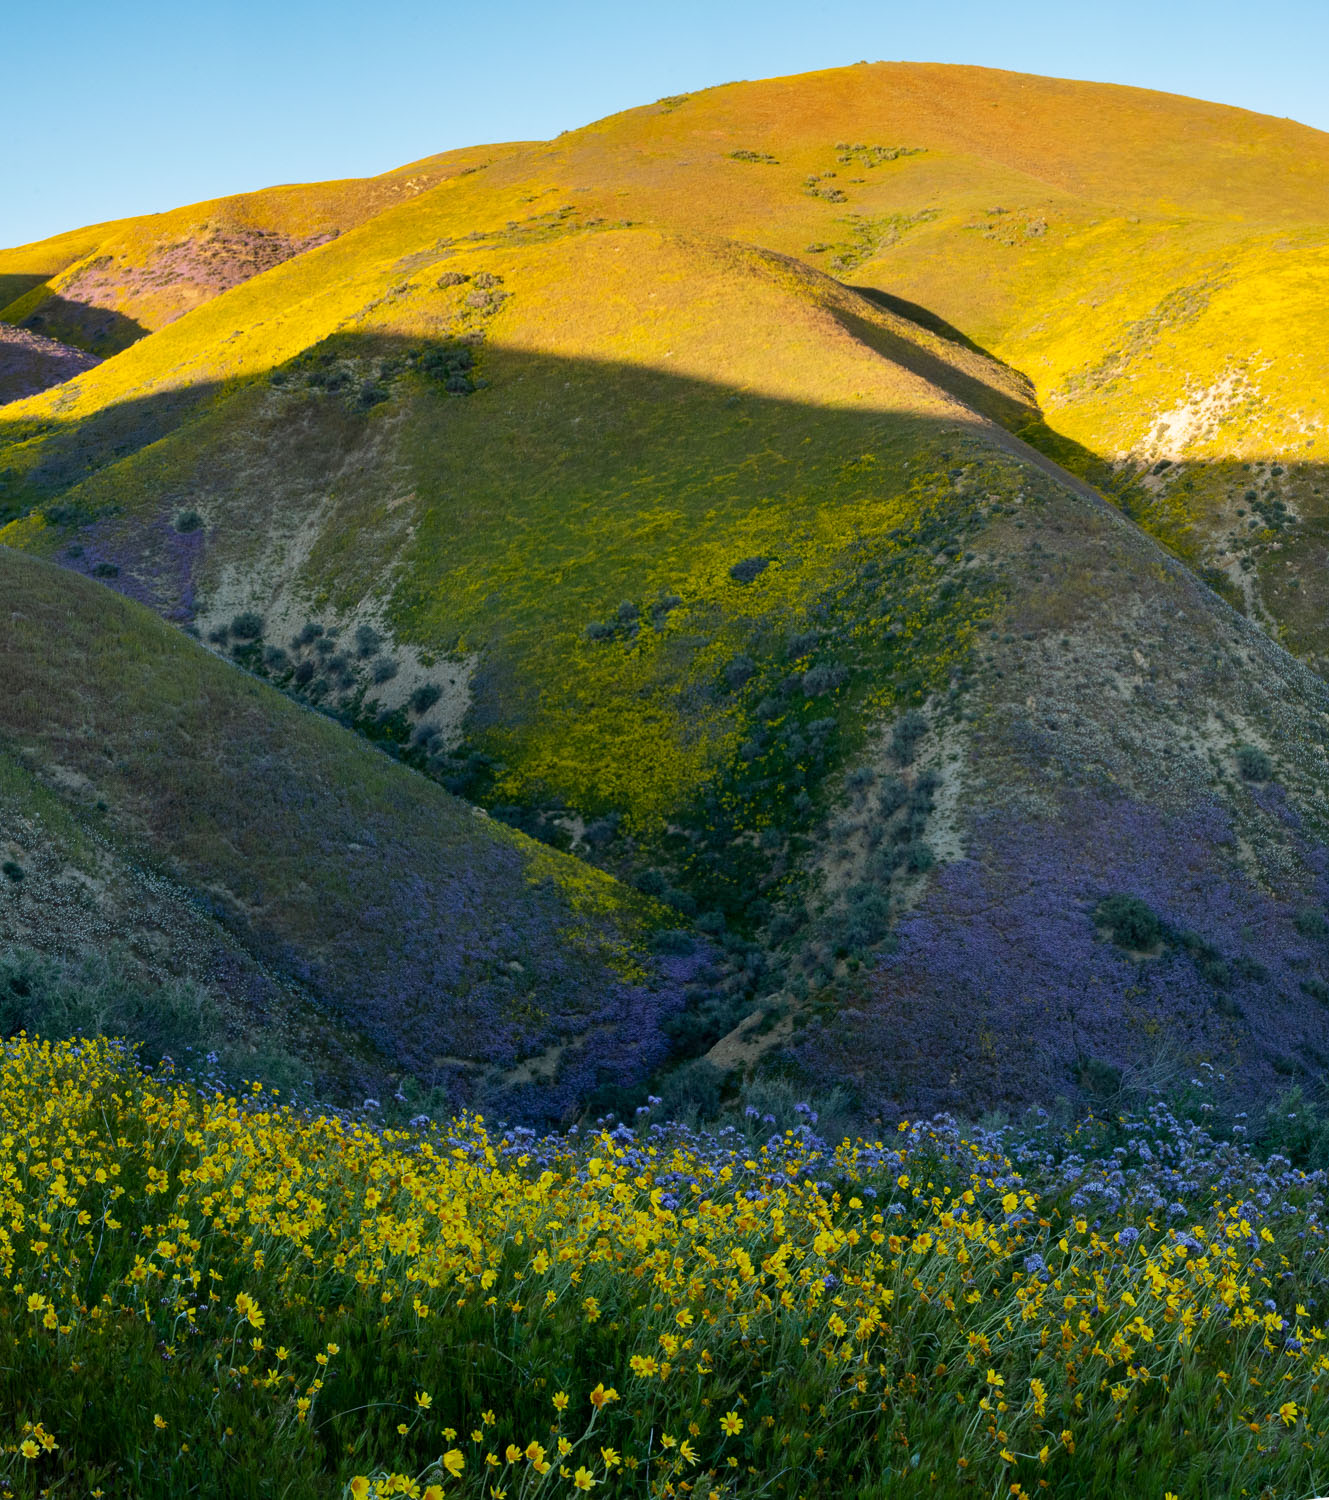 Goldfields and Filaree, Carrizo Plain National Monument, Calif